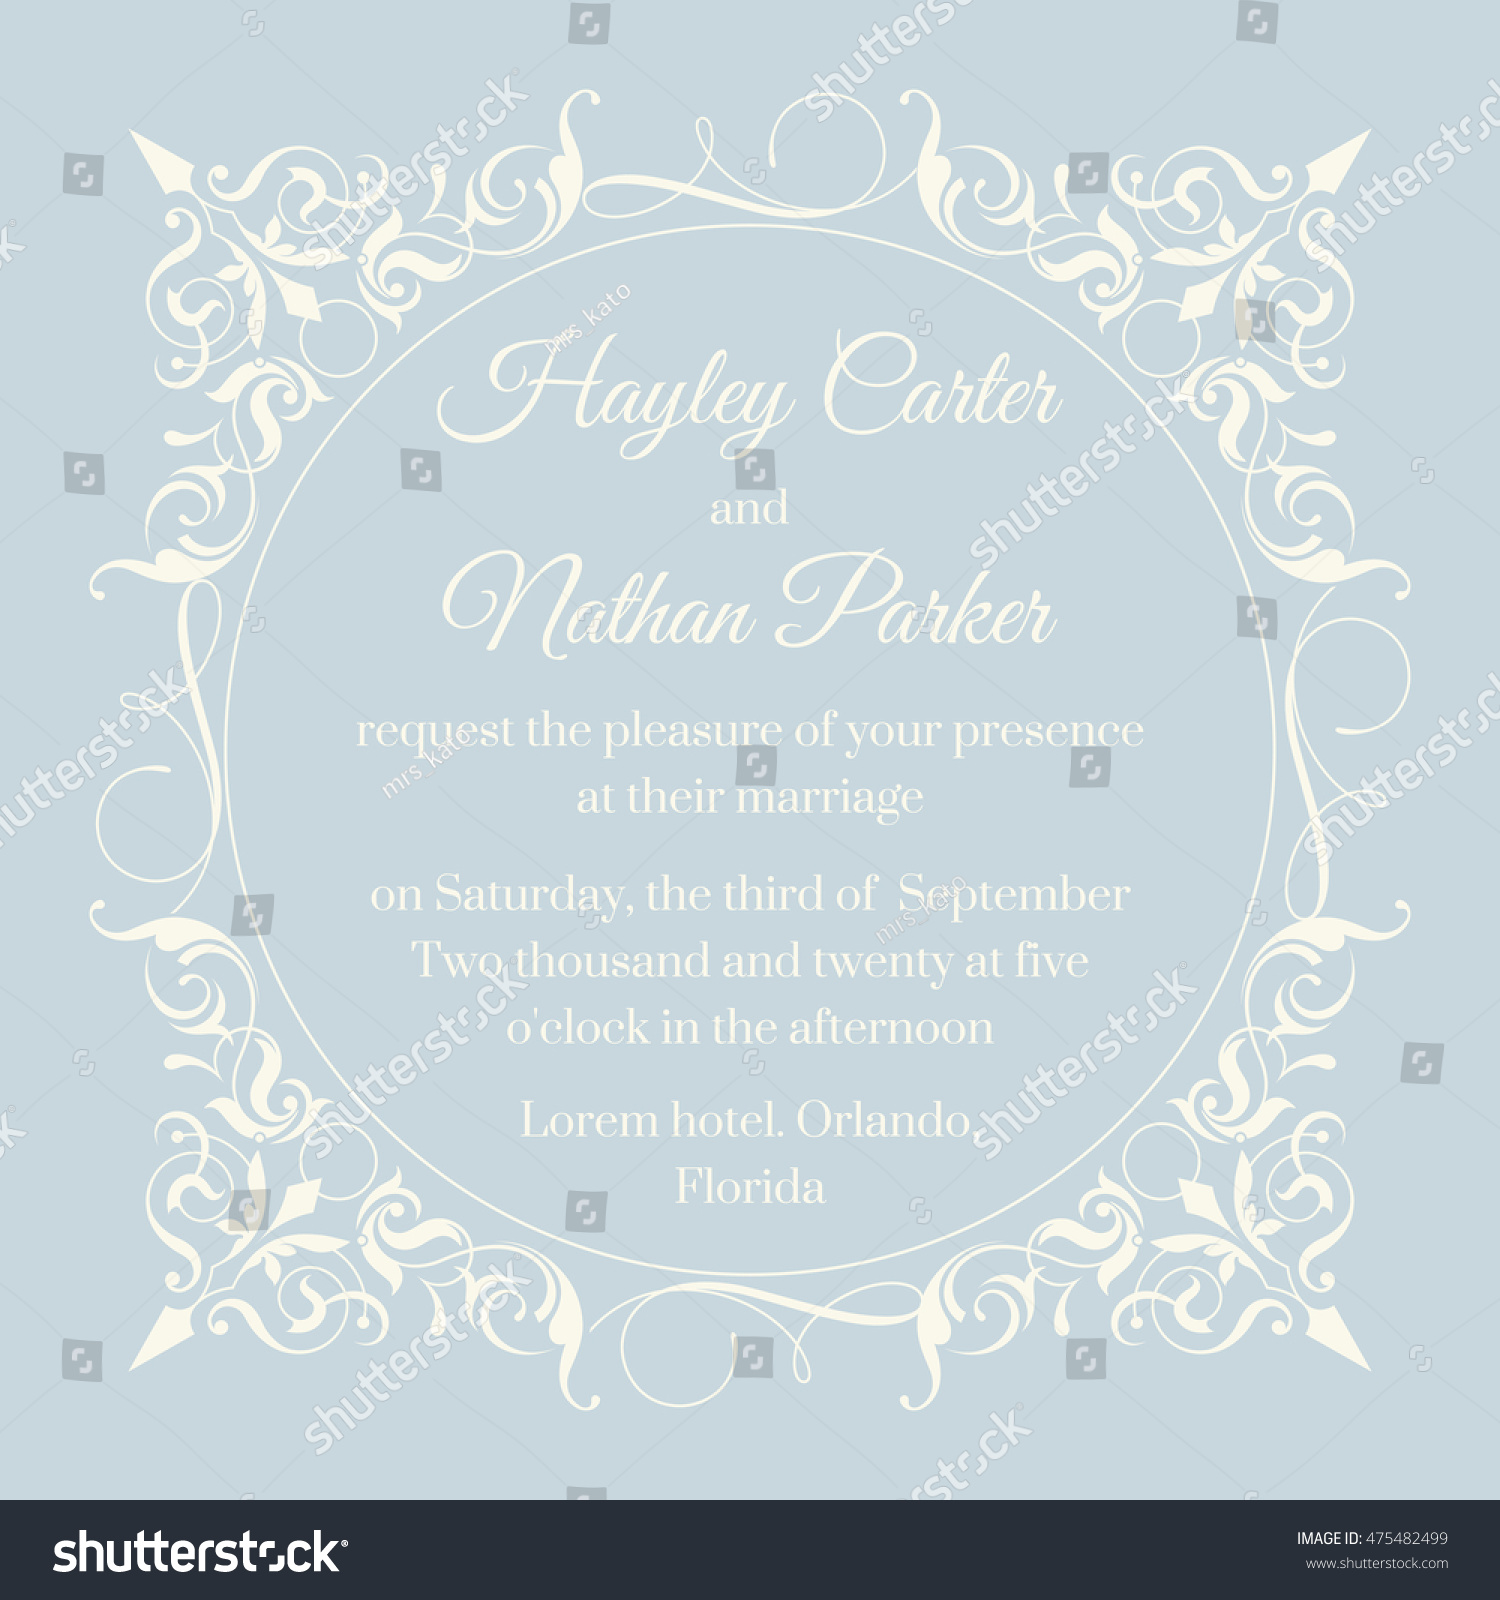 Save The Date Birthday Cards formal resignation letter example